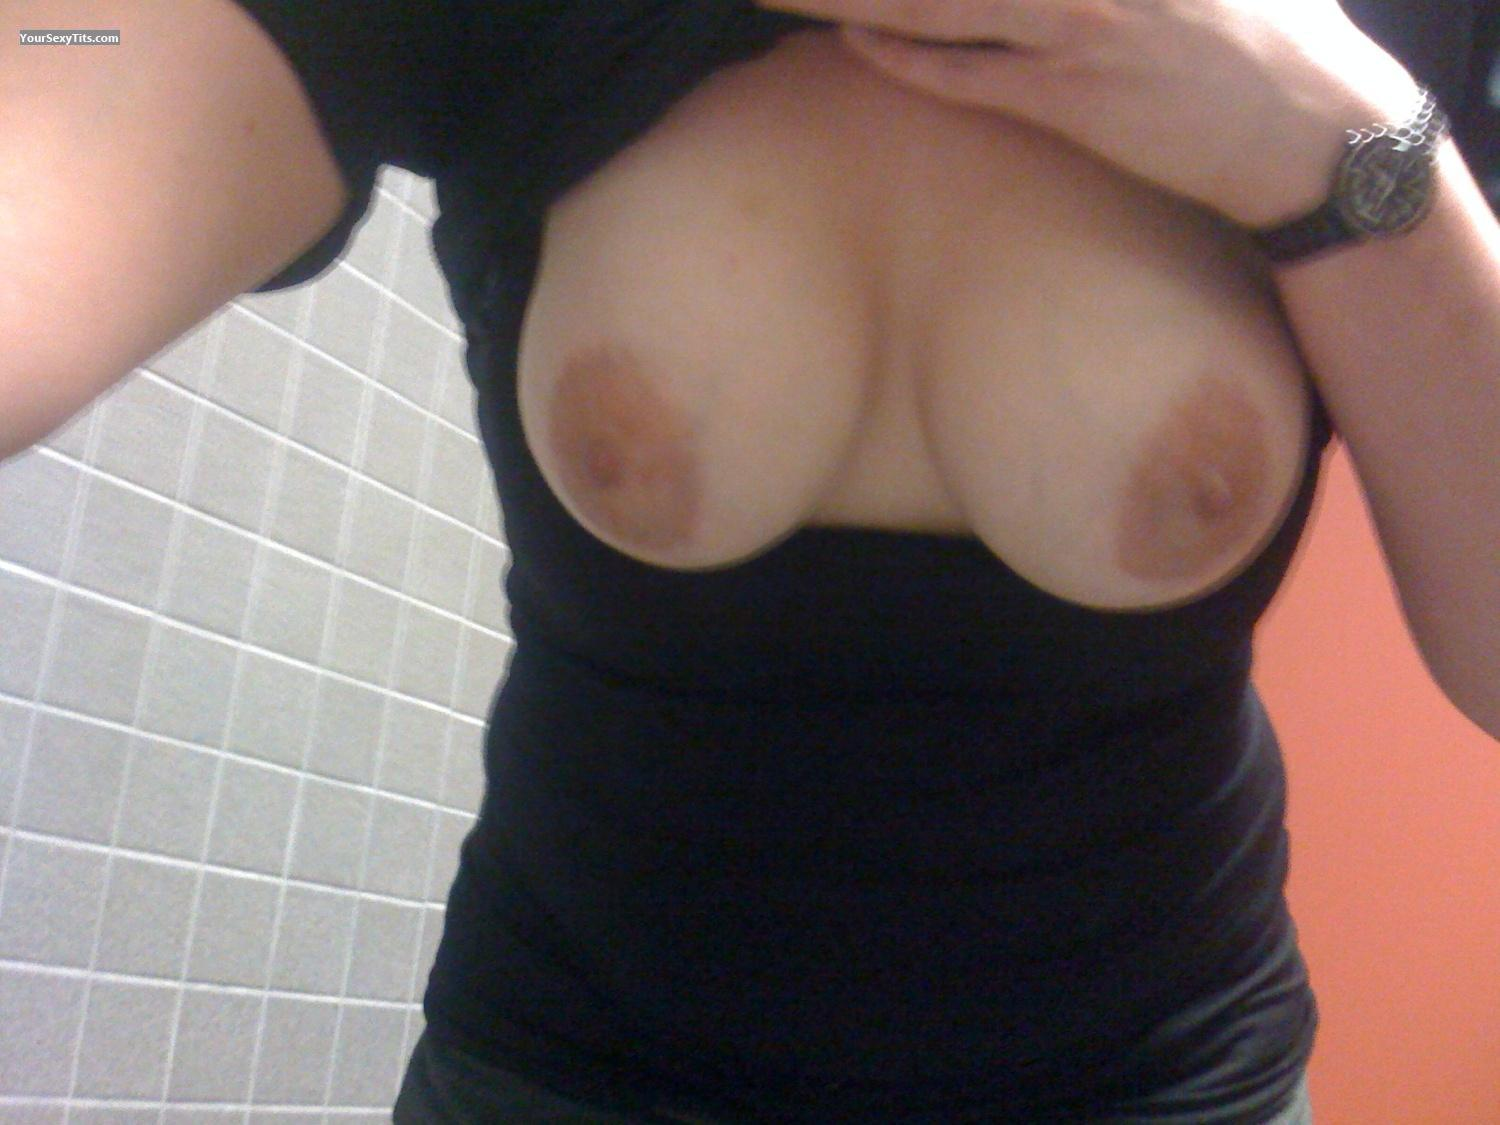 Tit Flash: My Medium Tits By IPhone (Selfie) - Kiki from United States